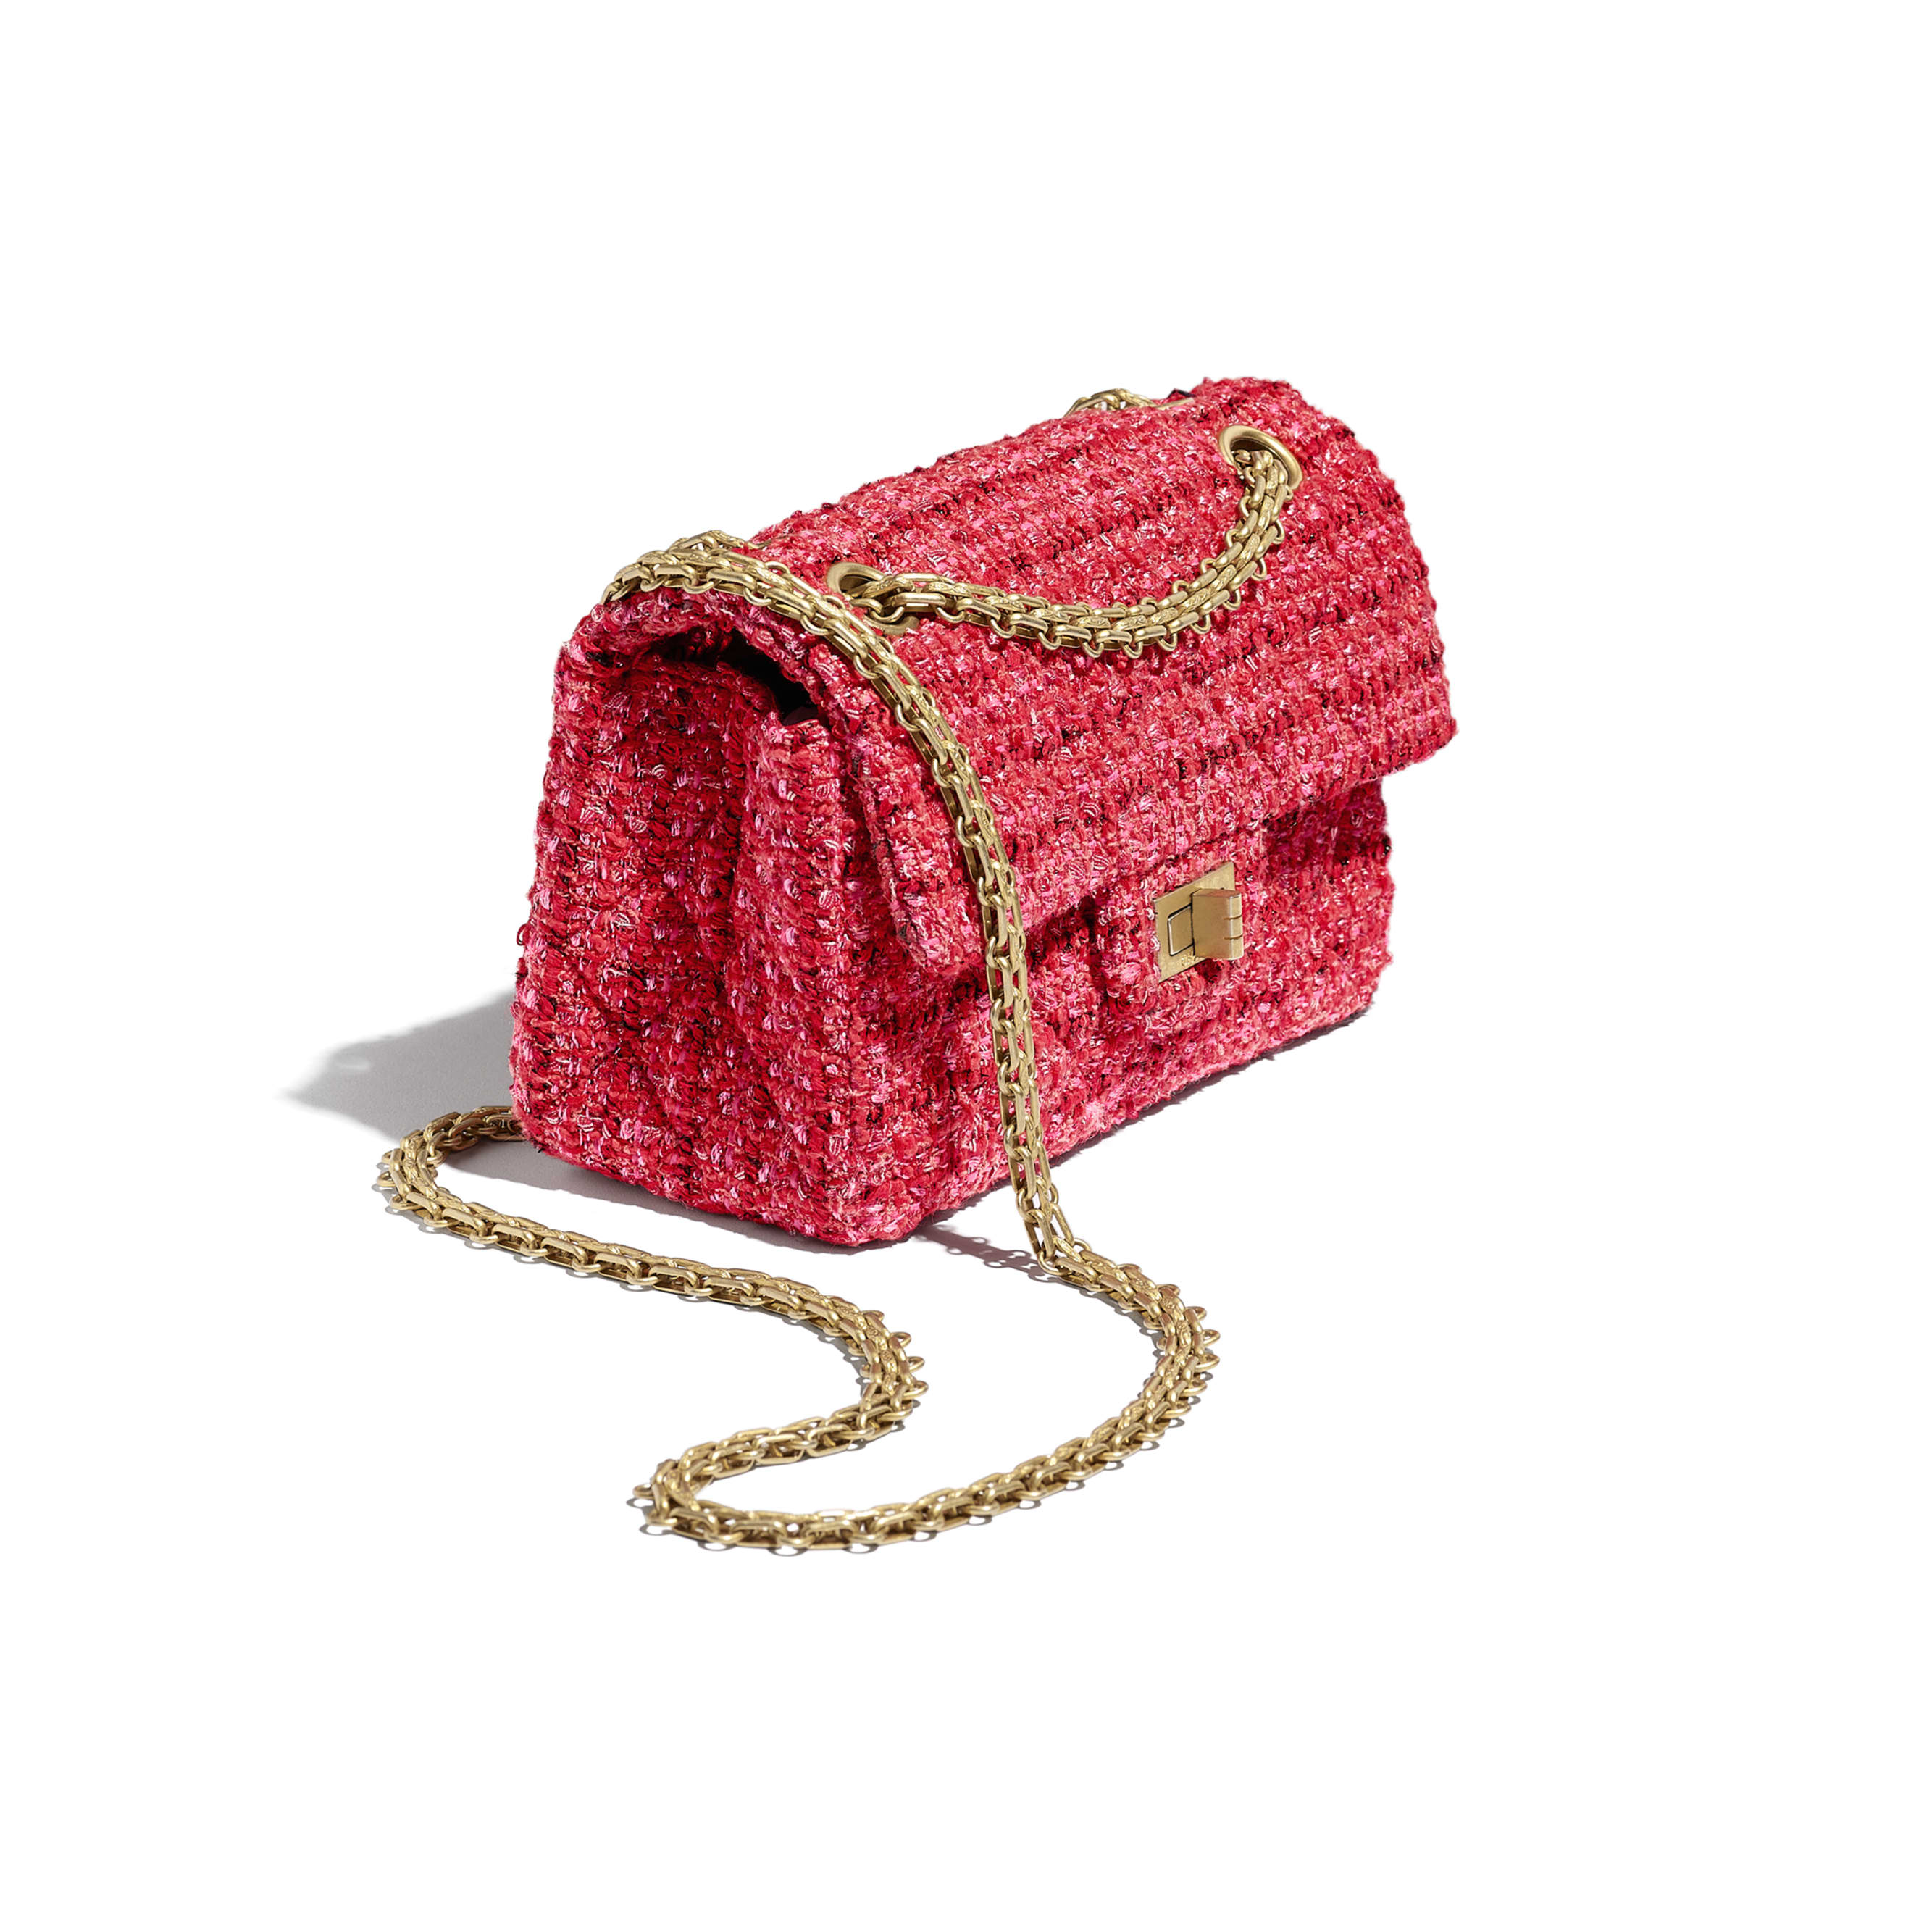 Mini 2.55 Handbag - Red, Ecru & Black - Tweed & Gold Metal - CHANEL - Extra view - see standard sized version